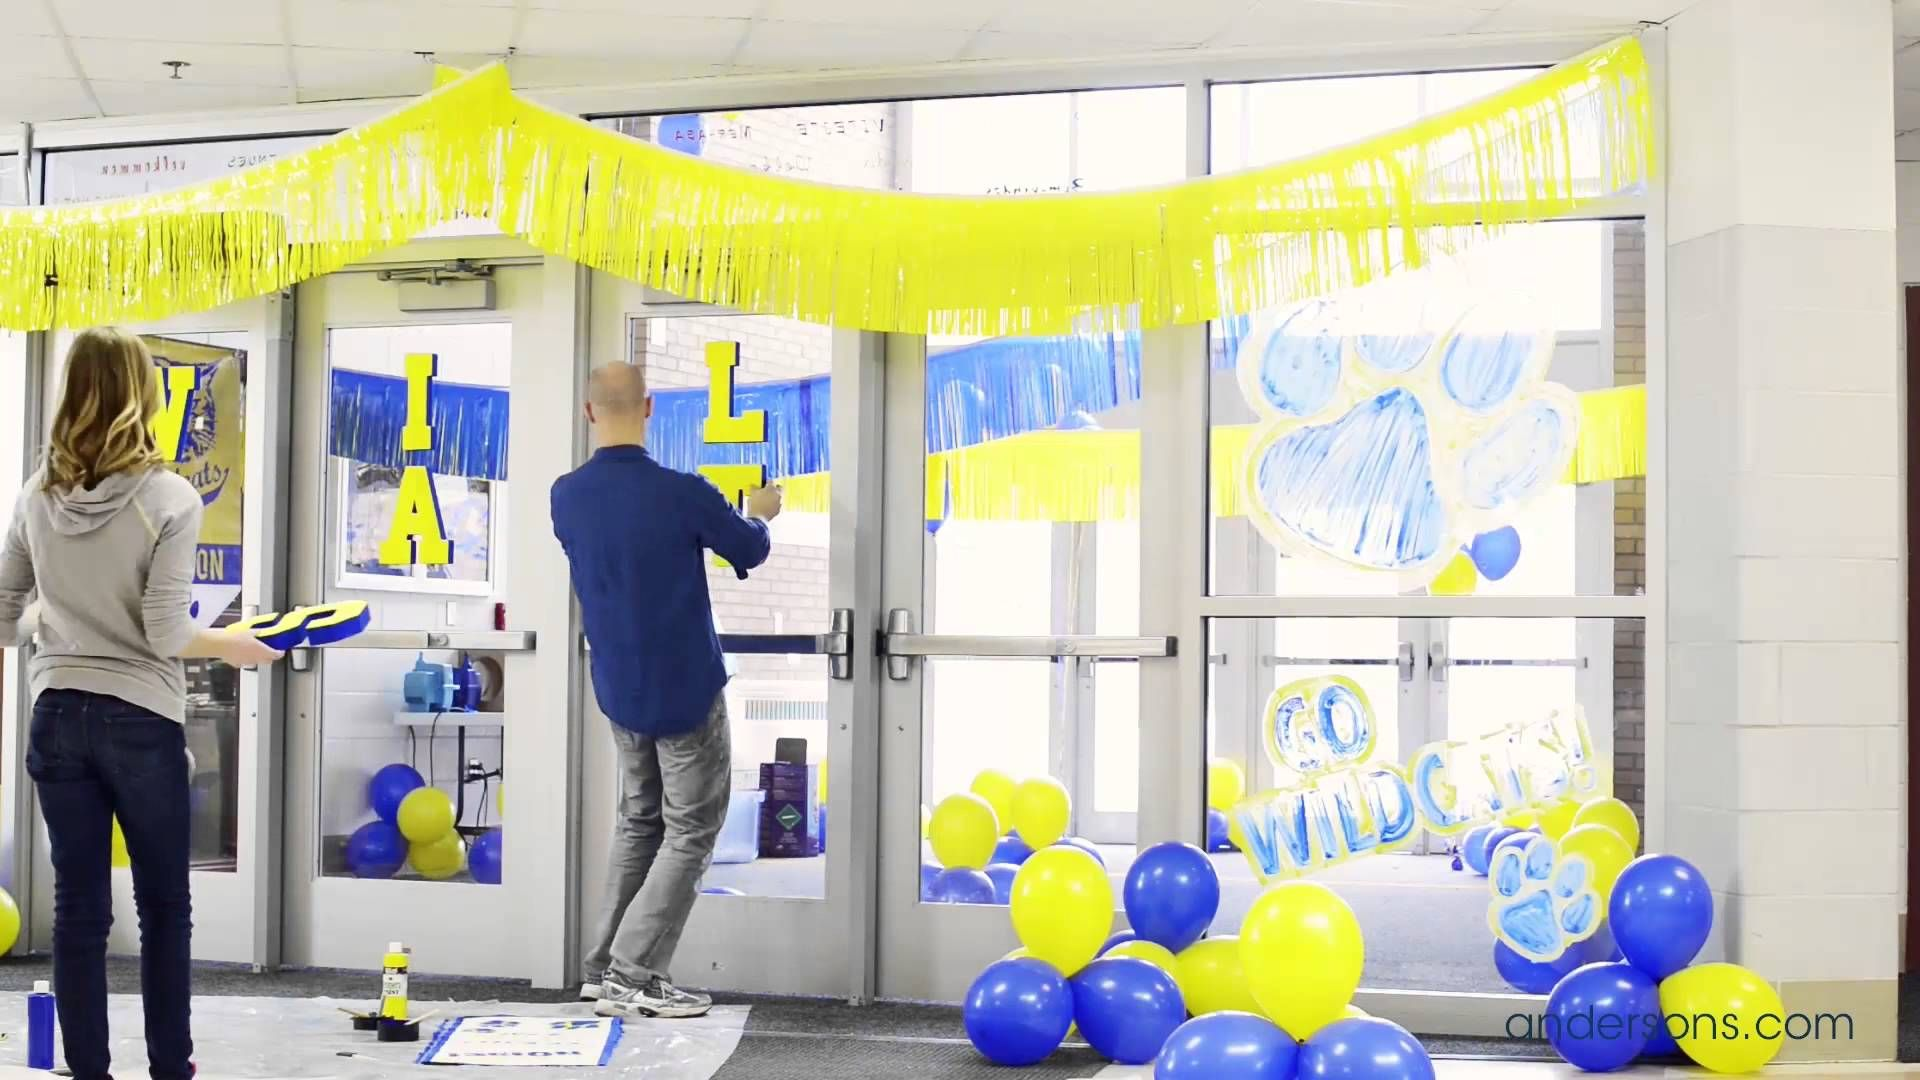 Increase School Spirit Watch Our Vid With Decorating Ideas For Homecoming And Spirit Week High School Decor School Sports Day Homecoming Decorations